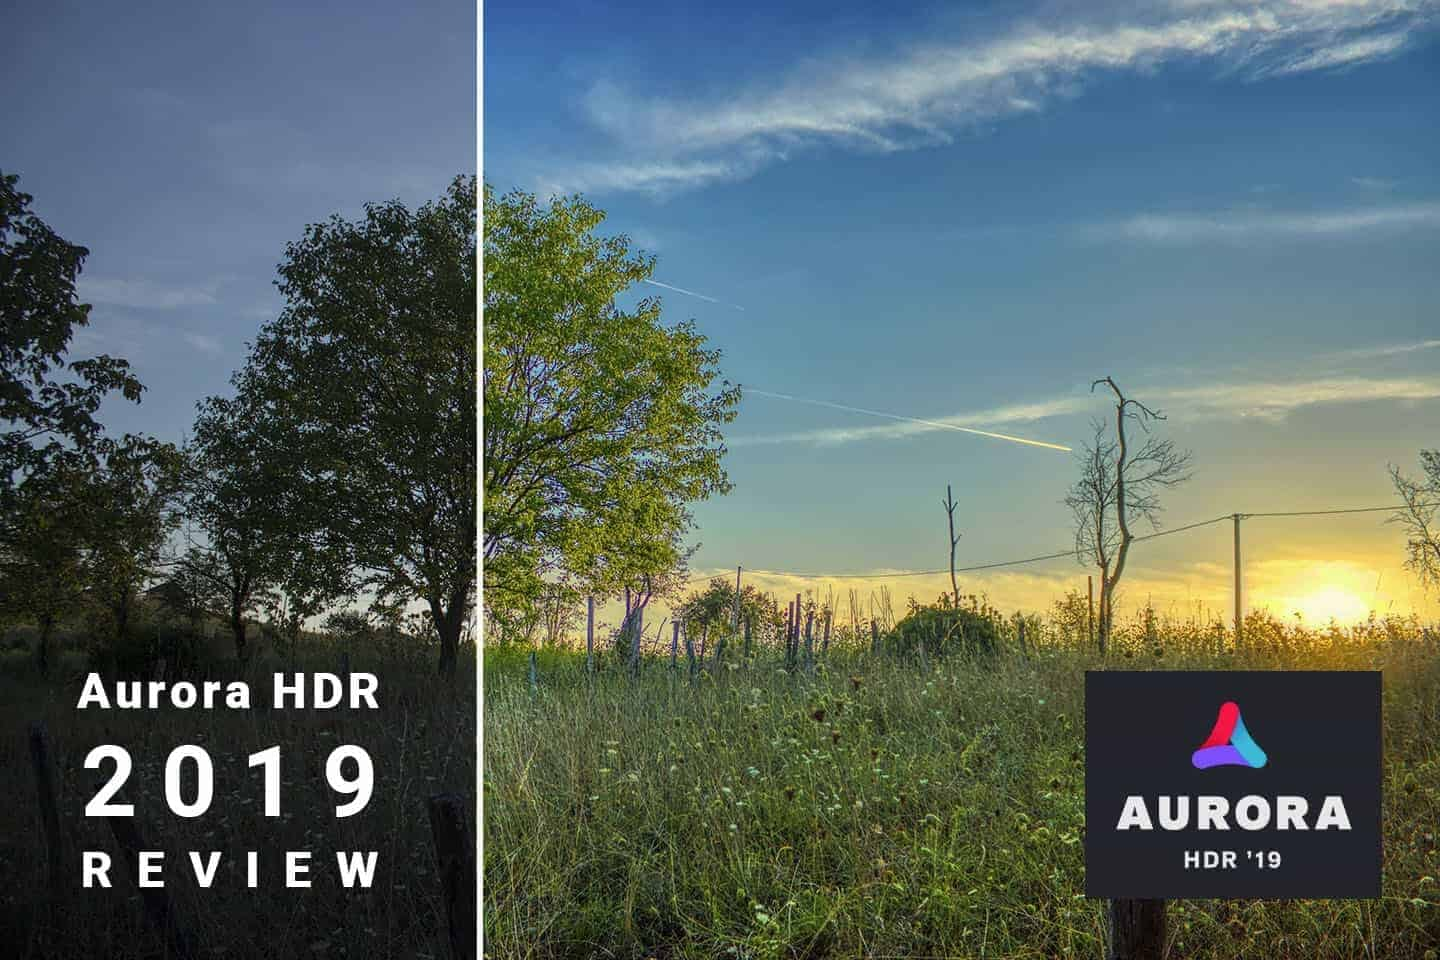 Aurora HDR 2019 Review: Best HDR Photo Editor Ever?